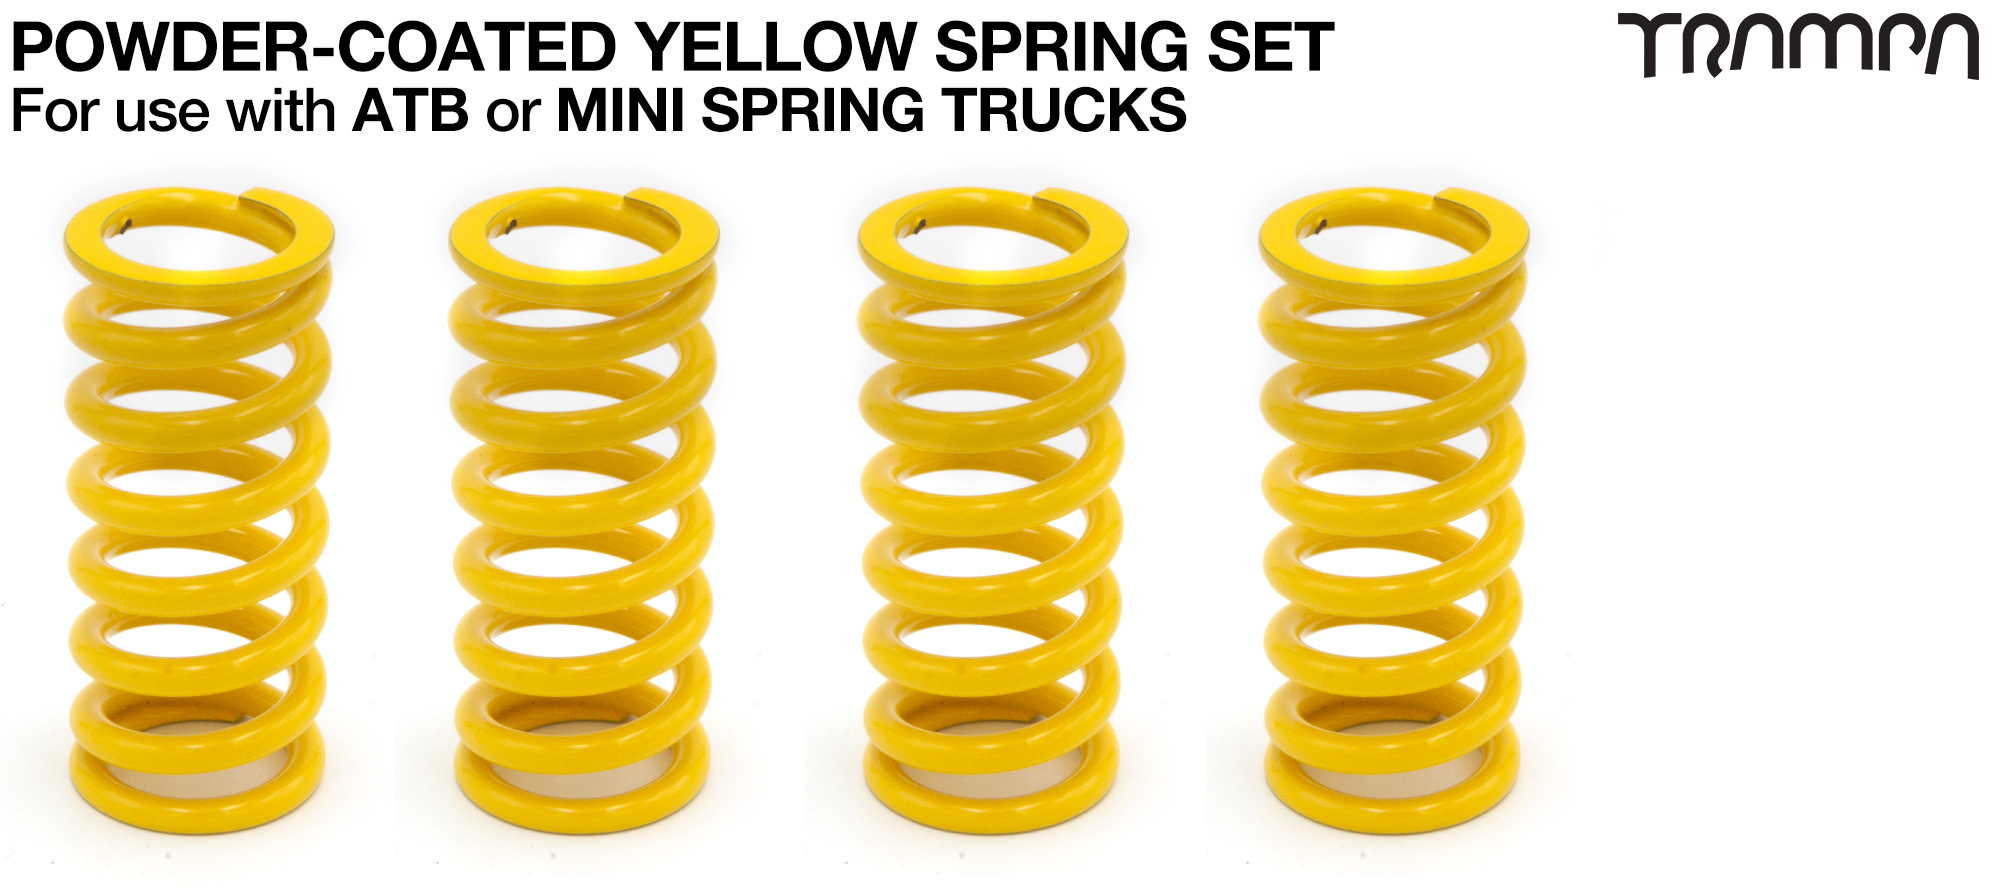 YELLOW Powder Coated Springs